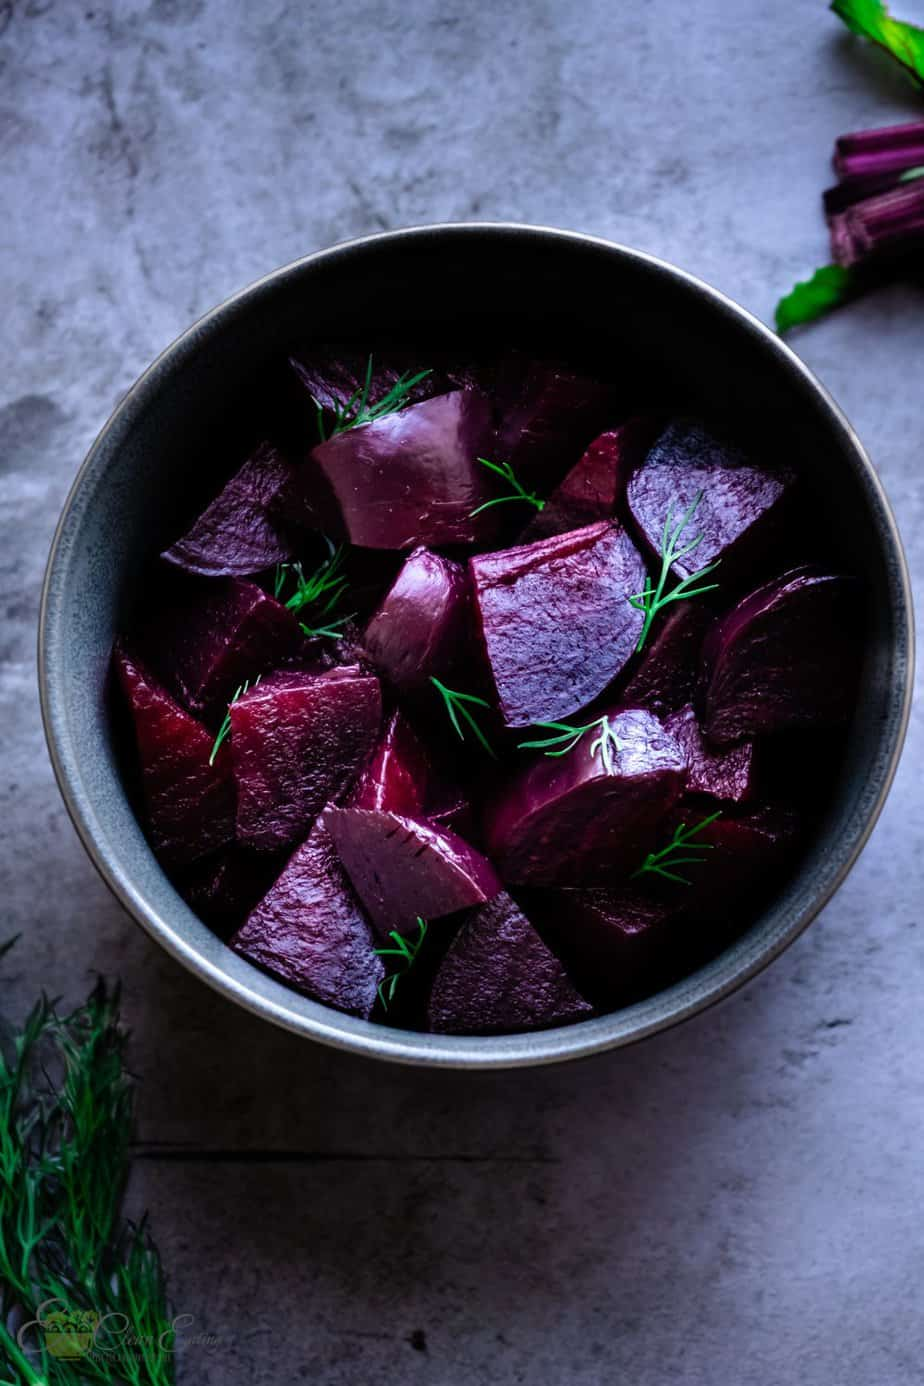 Choopped beets in a bowl after pressure cooking in the instant pot